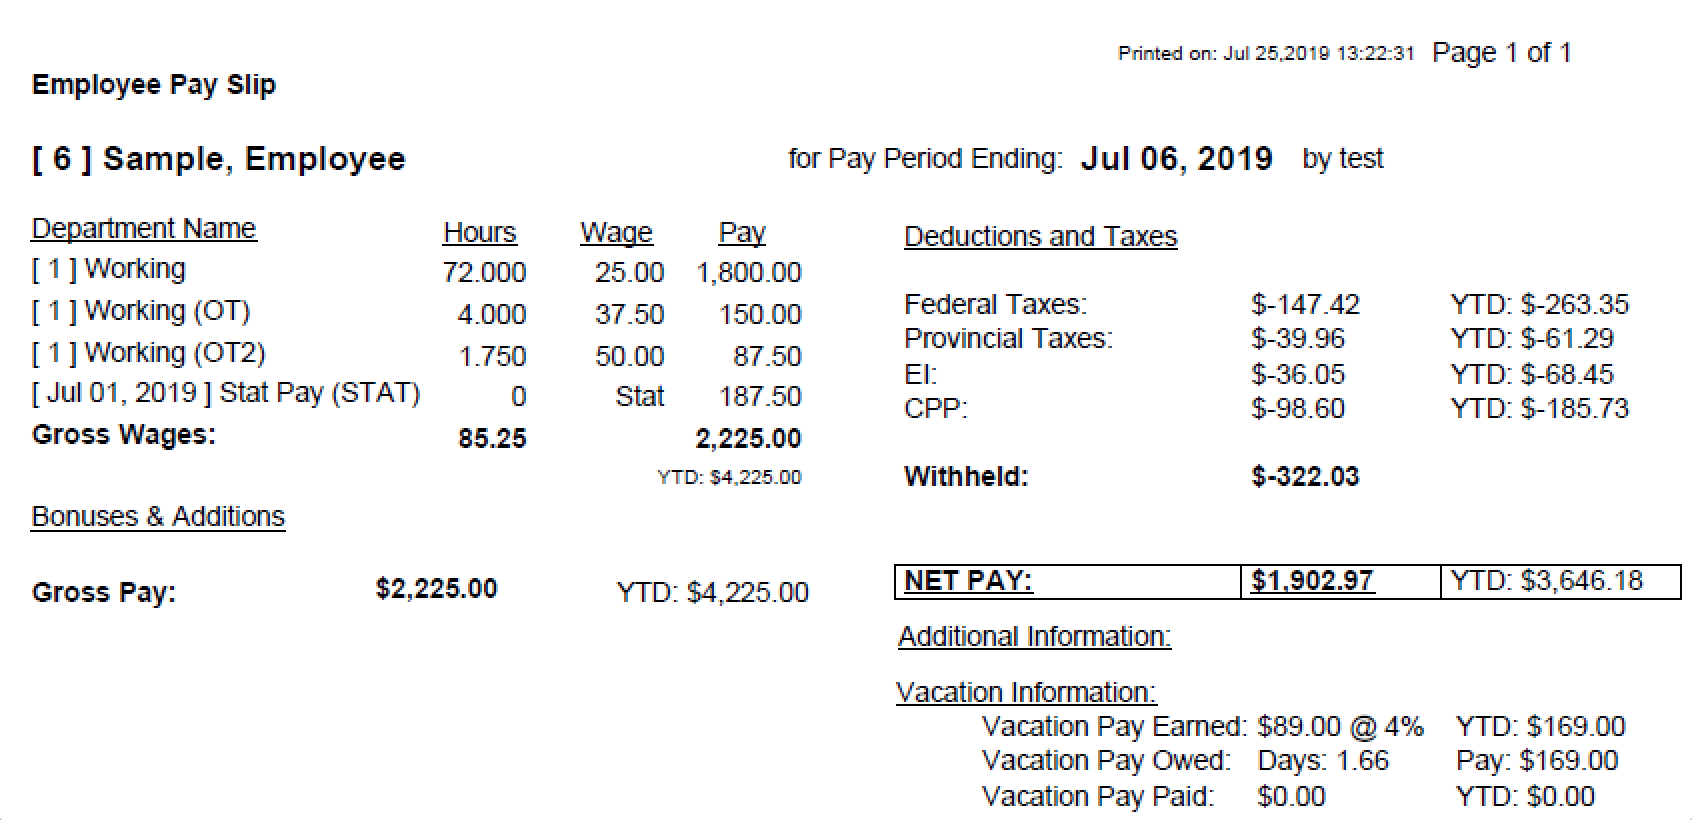 Payroll Connected emailed pay slips